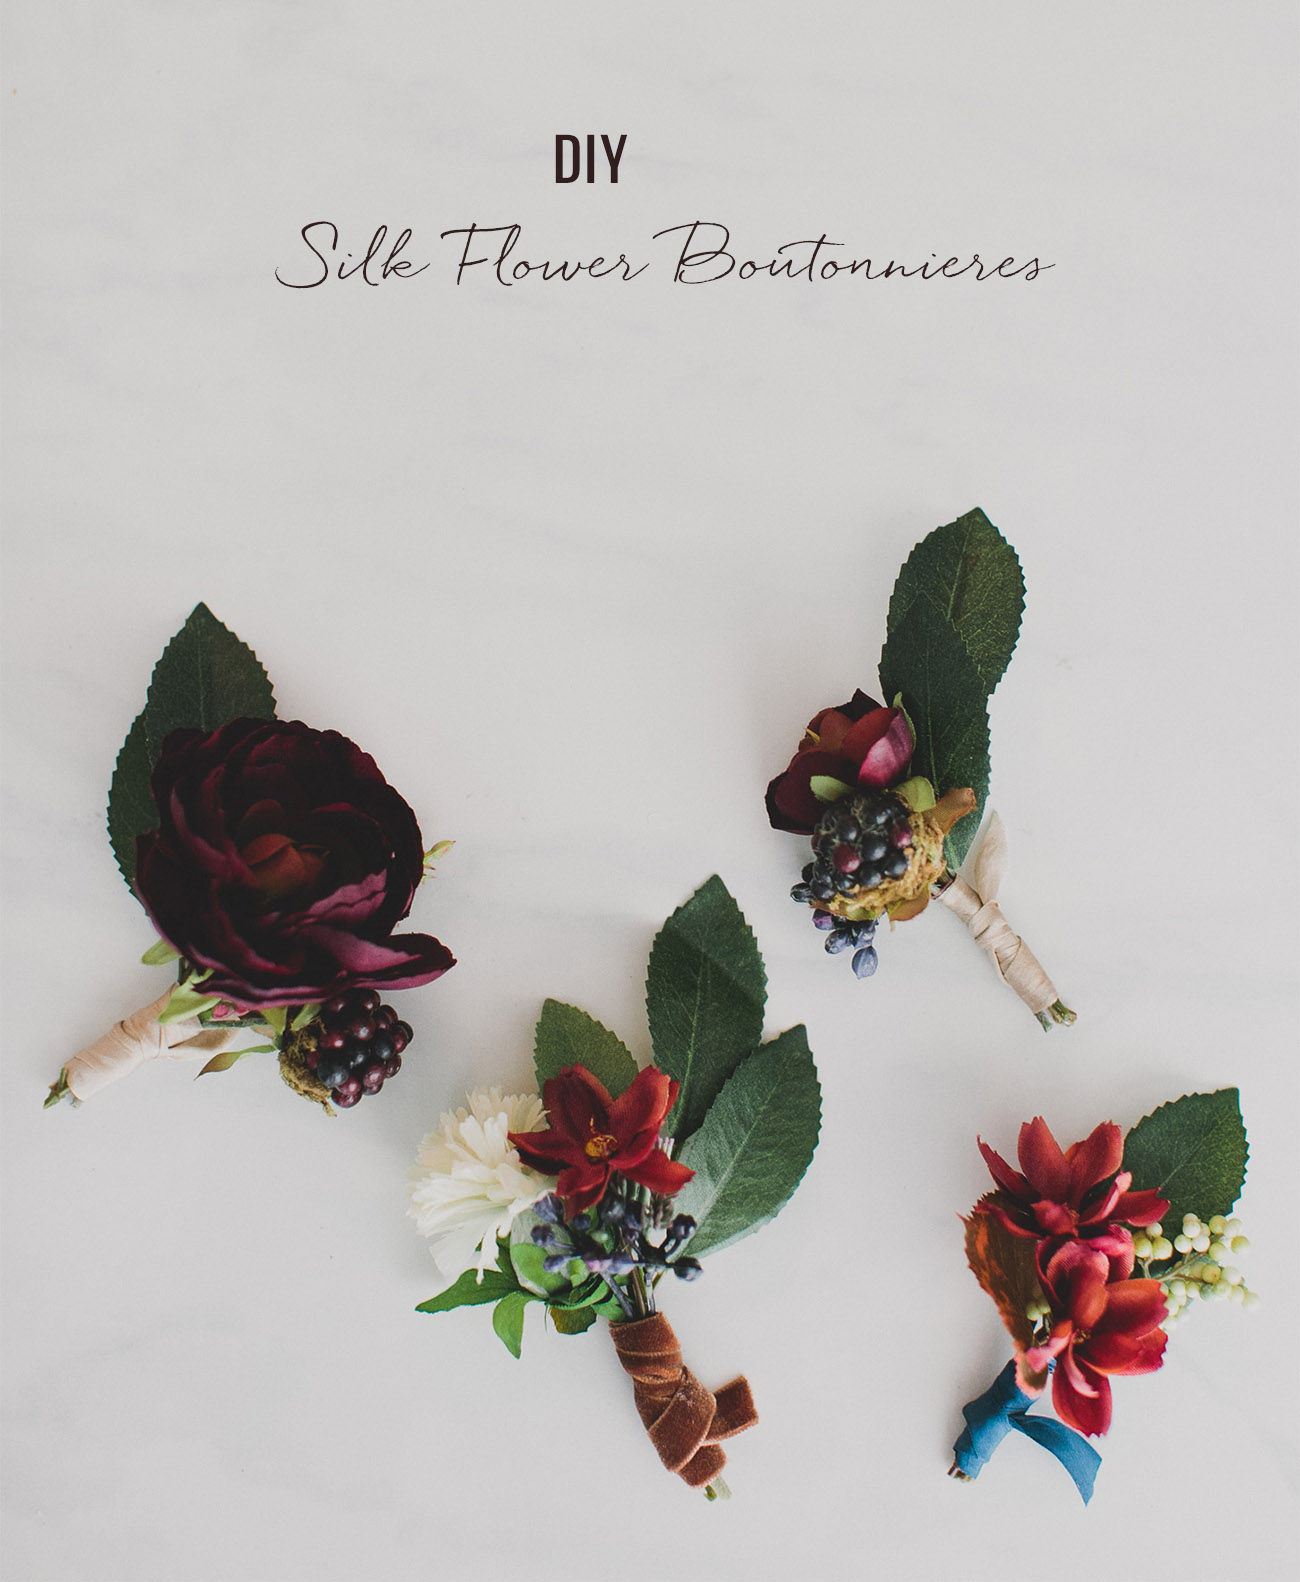 Diy silk flower boutonnieres green wedding shoes diy silk flower boutonnieres mightylinksfo Choice Image